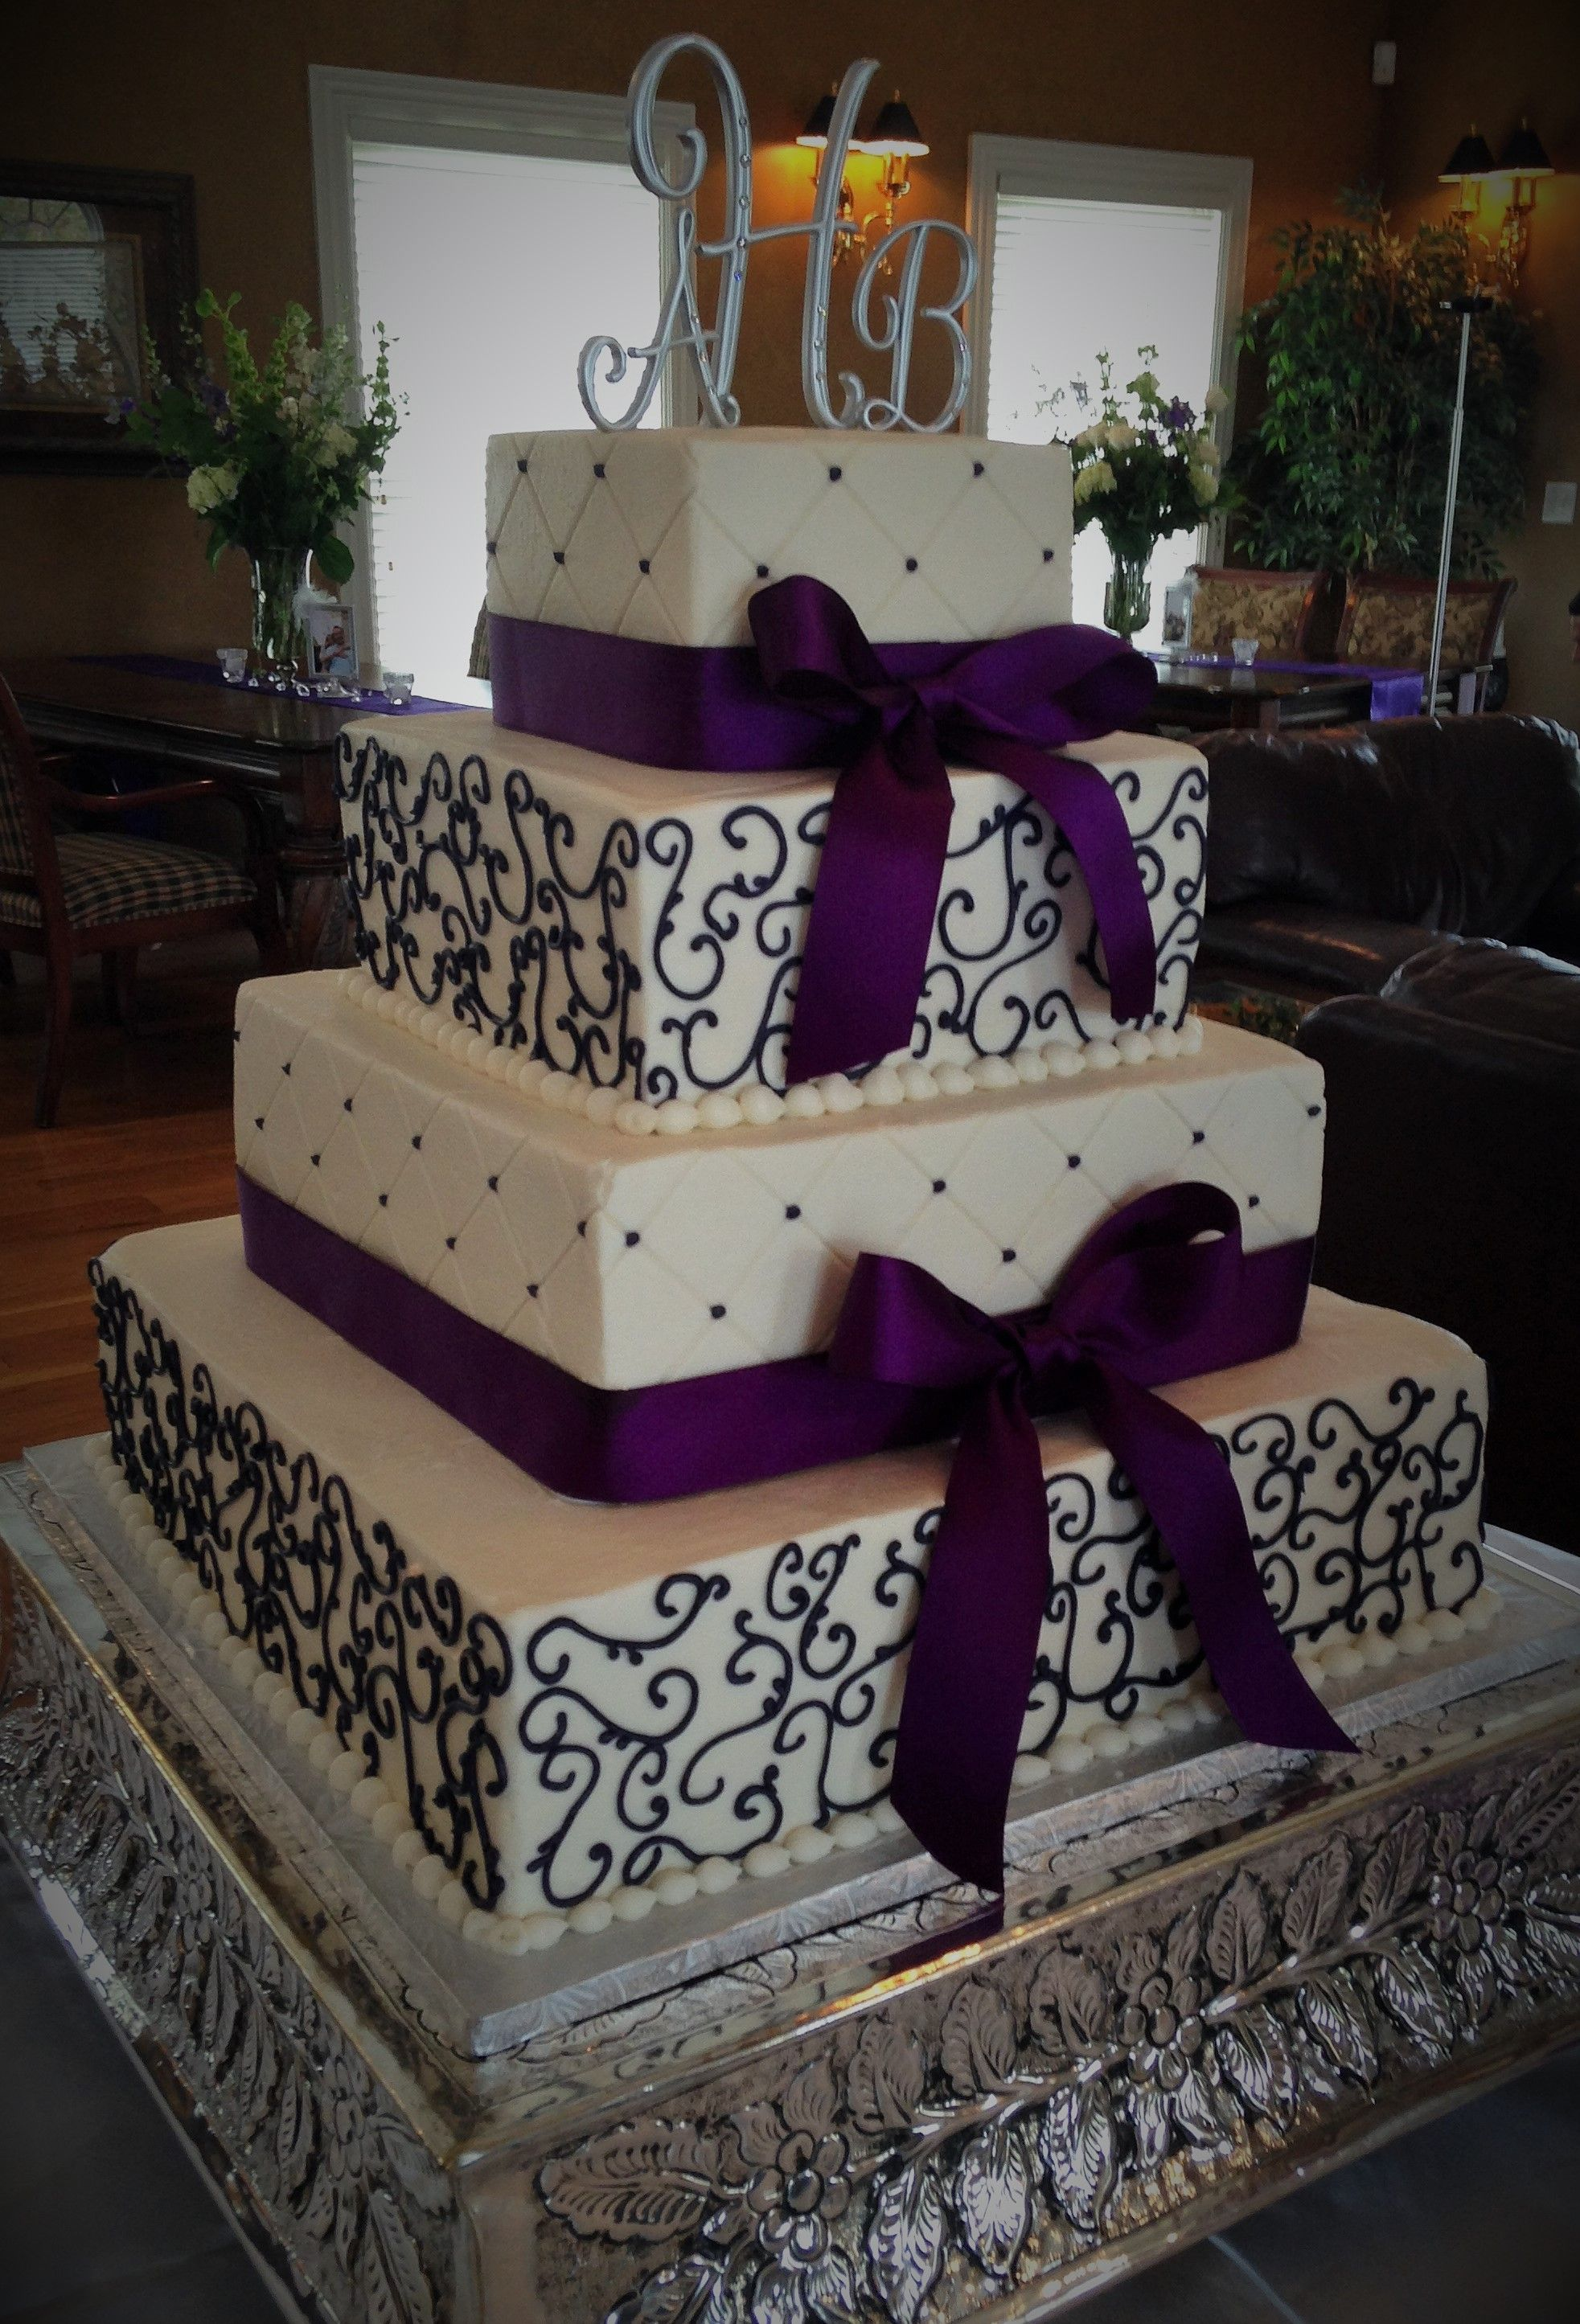 square 4 tier wedding cakes 4 tier square wedding cake w purple details wedding 20343